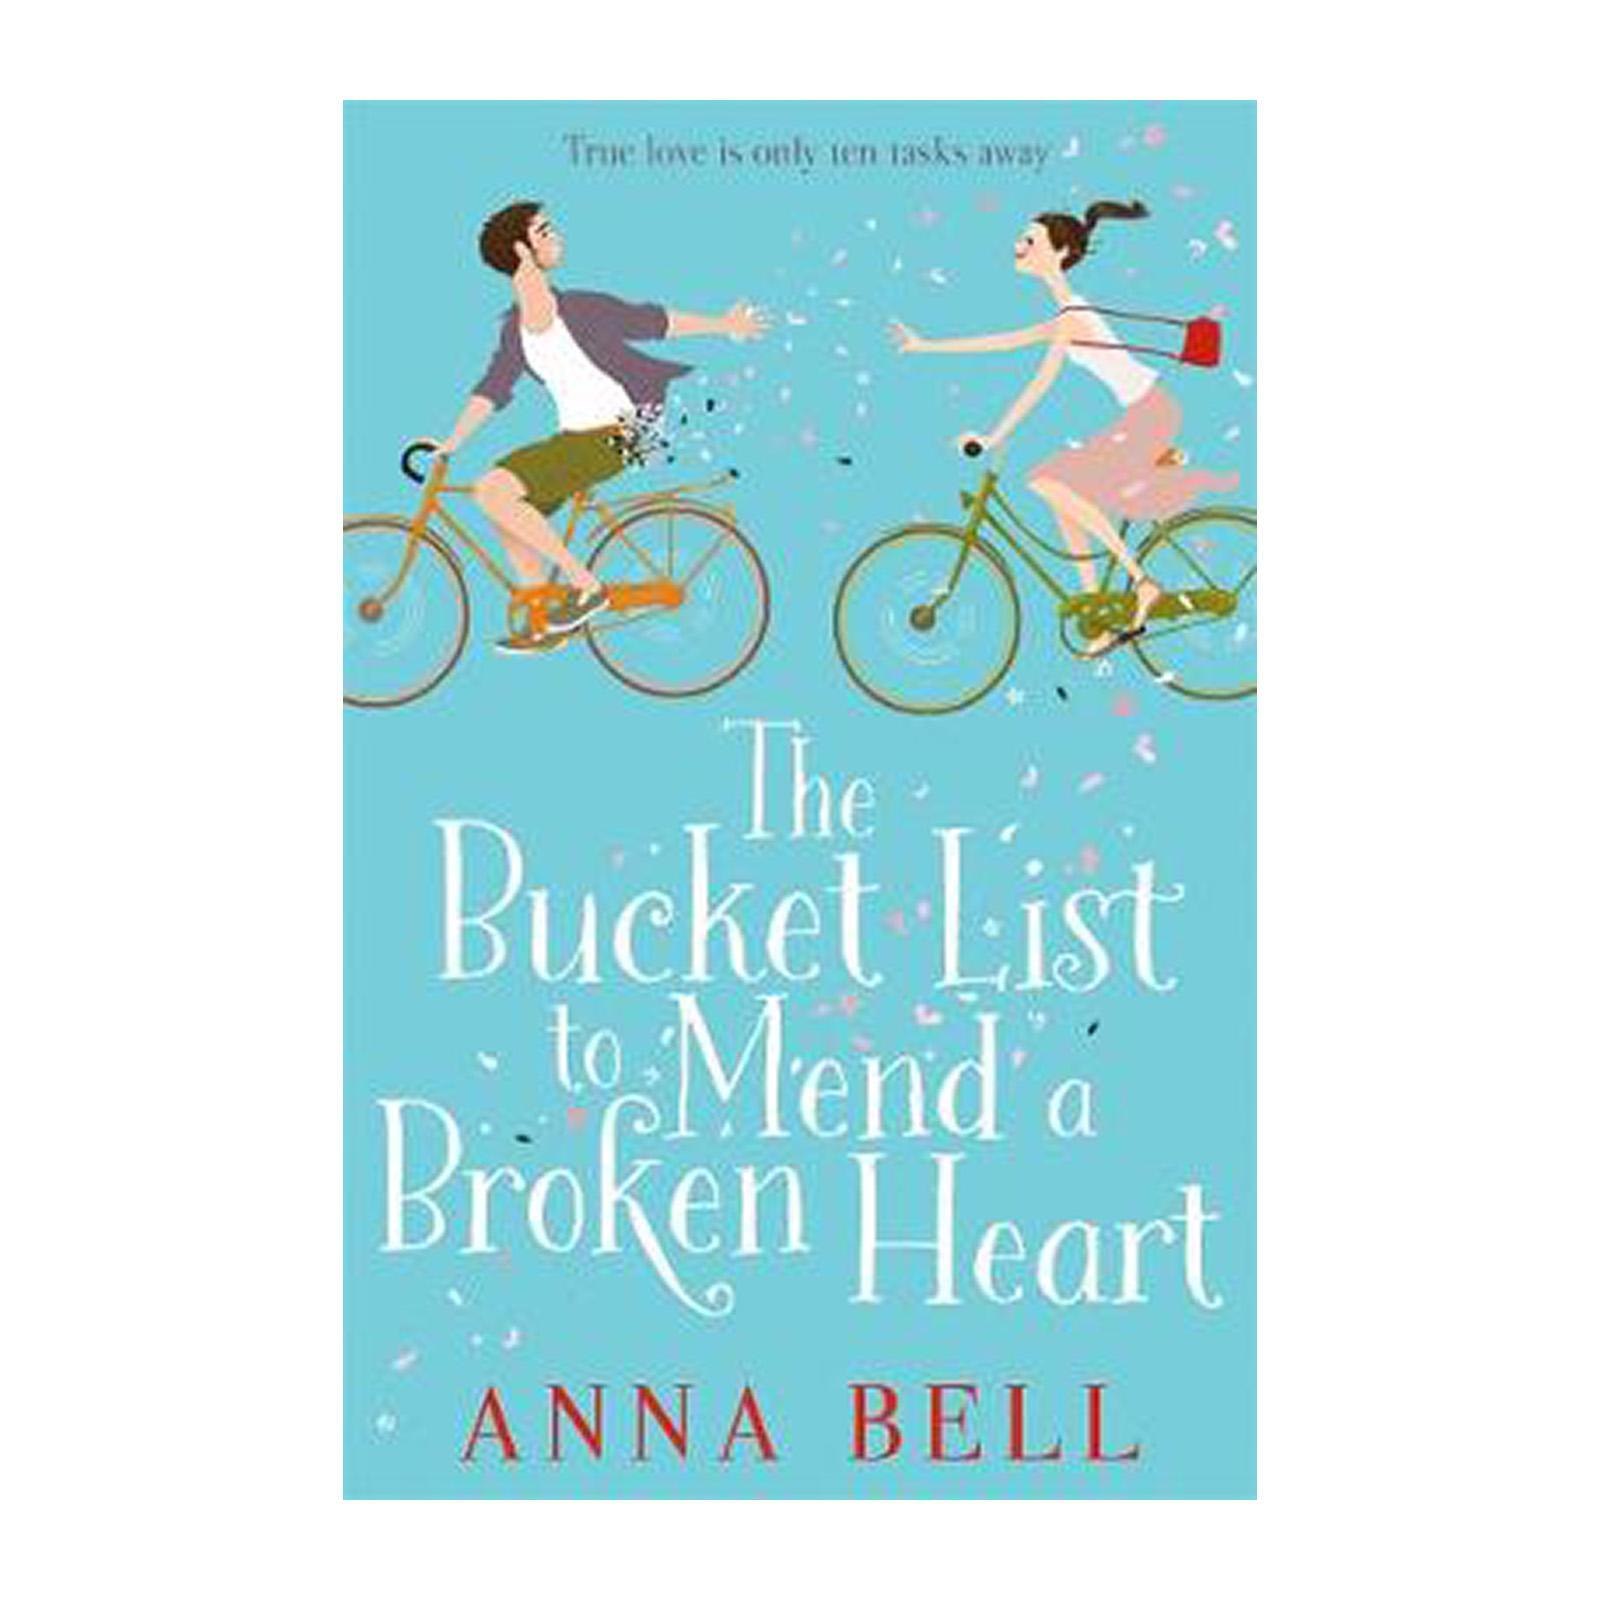 The Bucket List To Mend A Broken Heart: The Laugh-Out-Loud Love Story Of The Year! (Paperback)